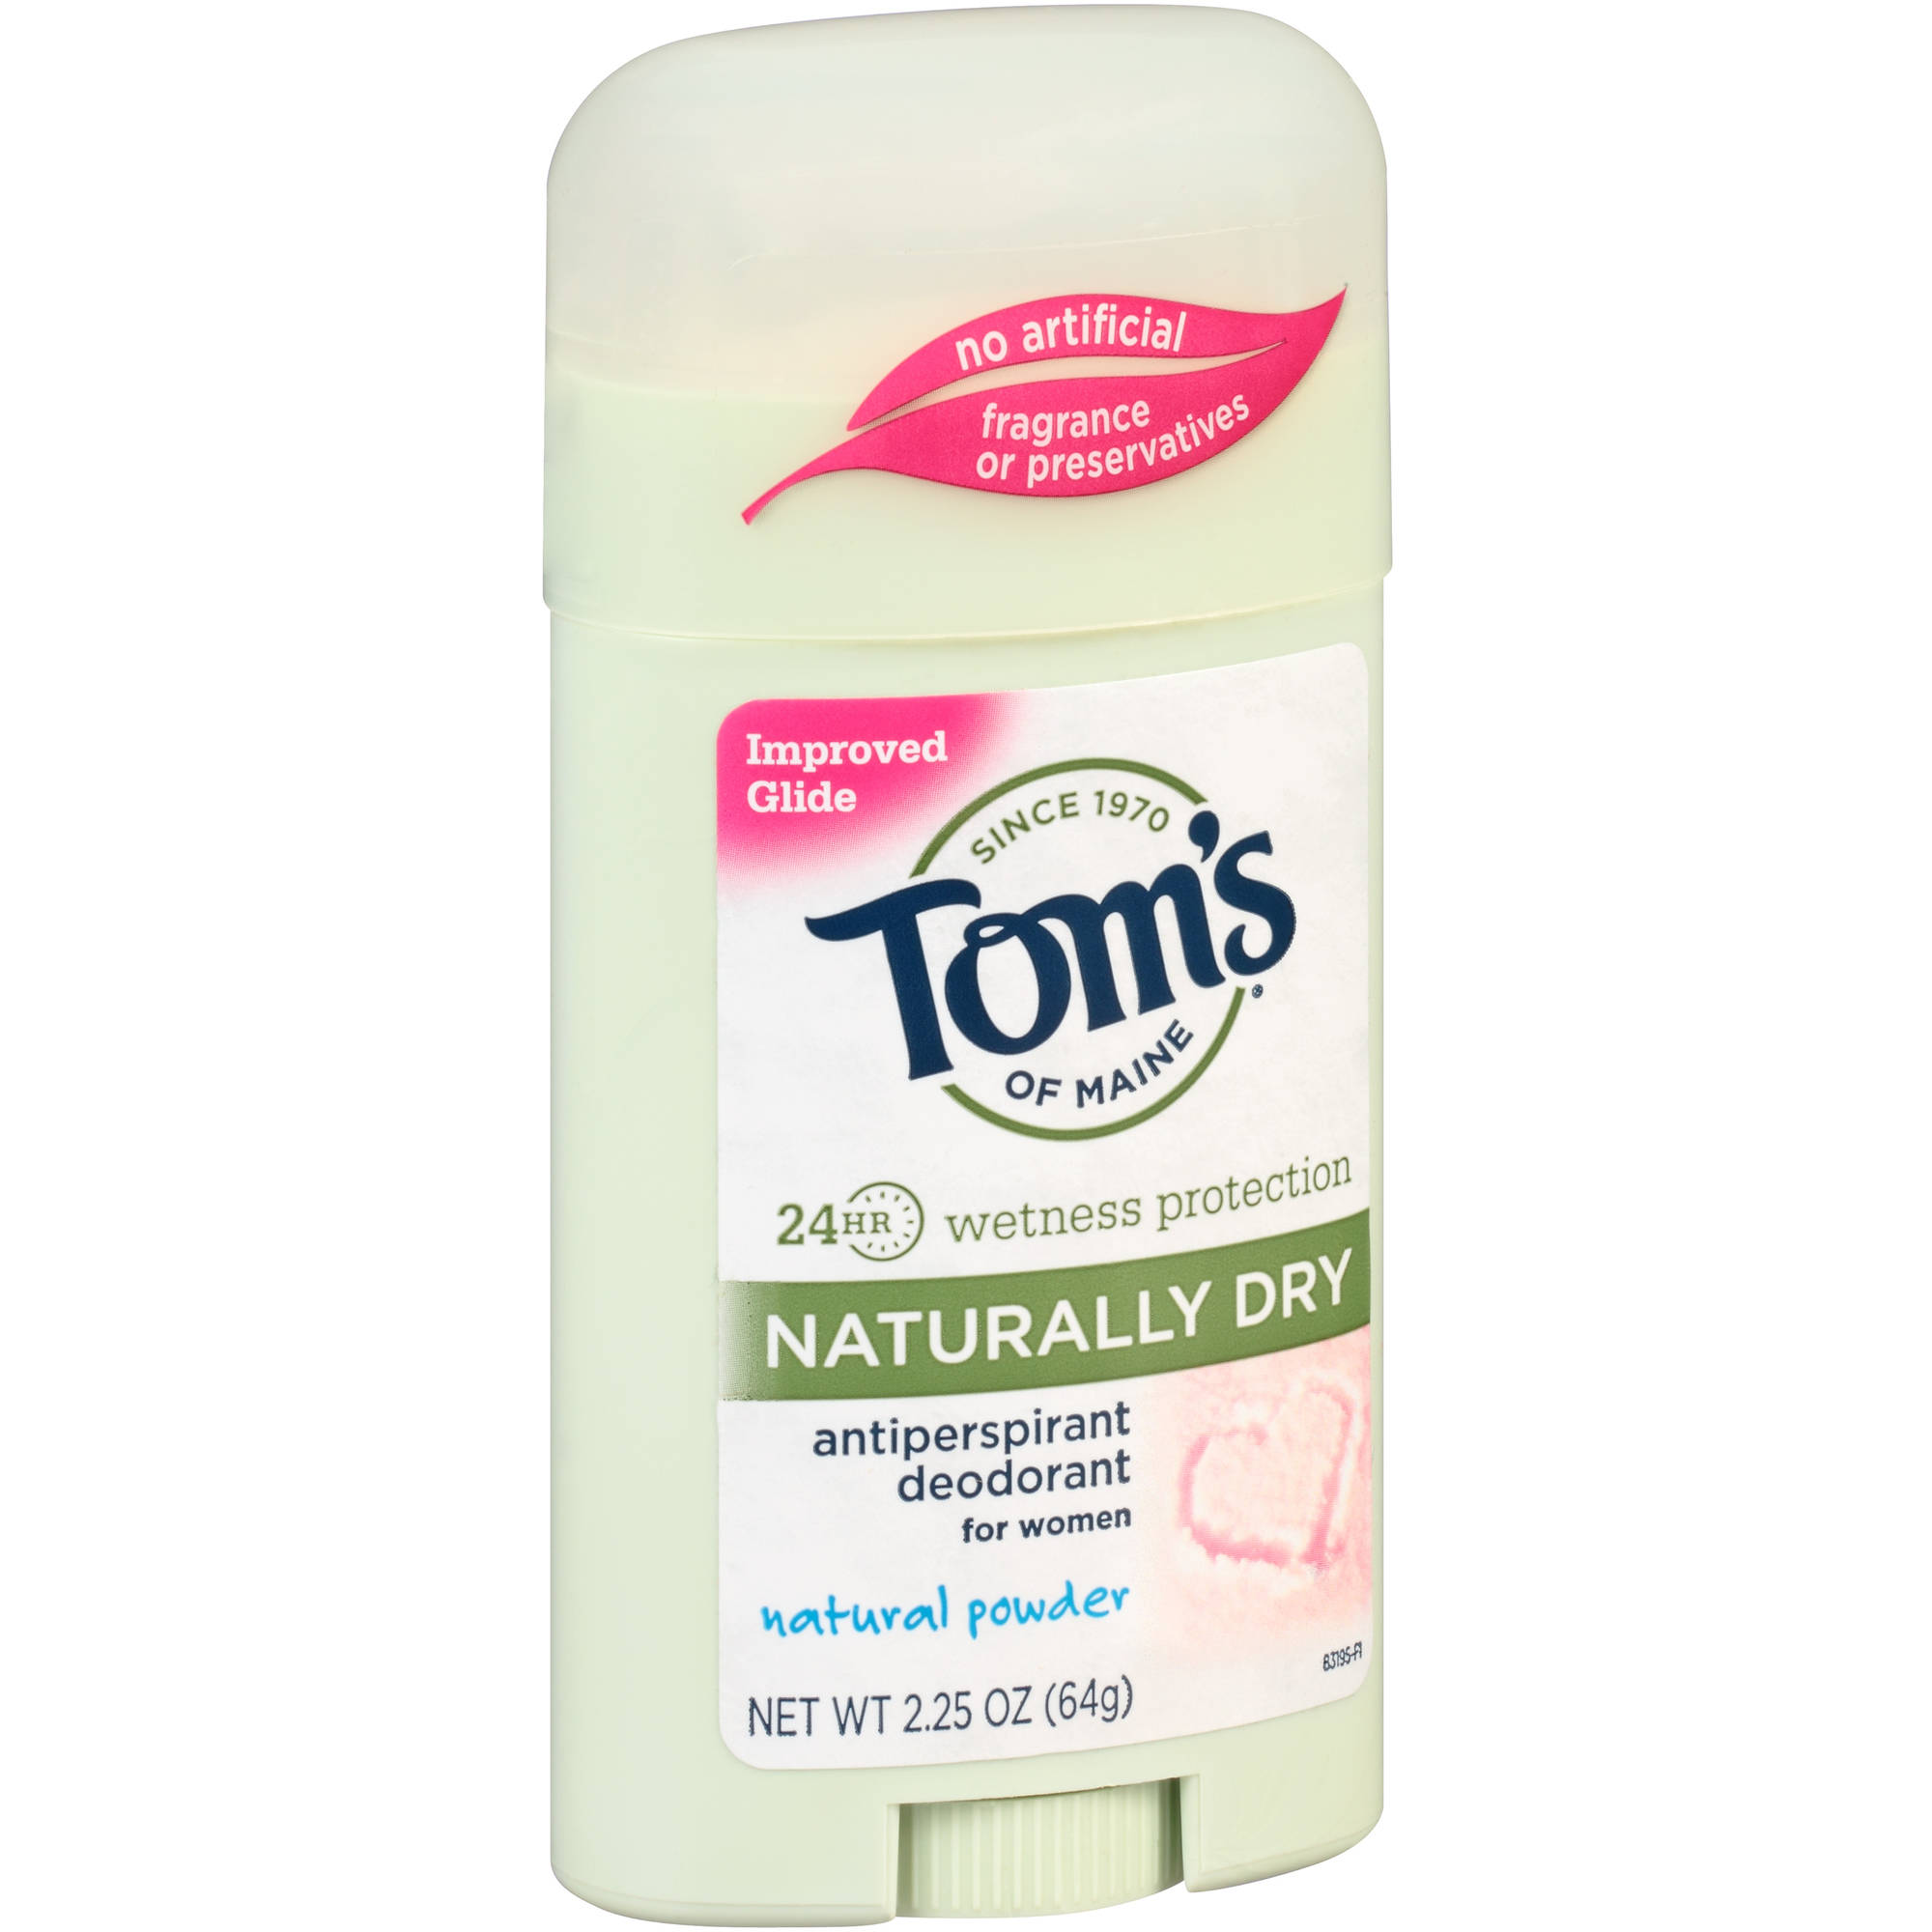 Tom's of Maine Naturally Dry Natural Powder Antiperspirant Deodorant Stick for Women, 2.25 oz